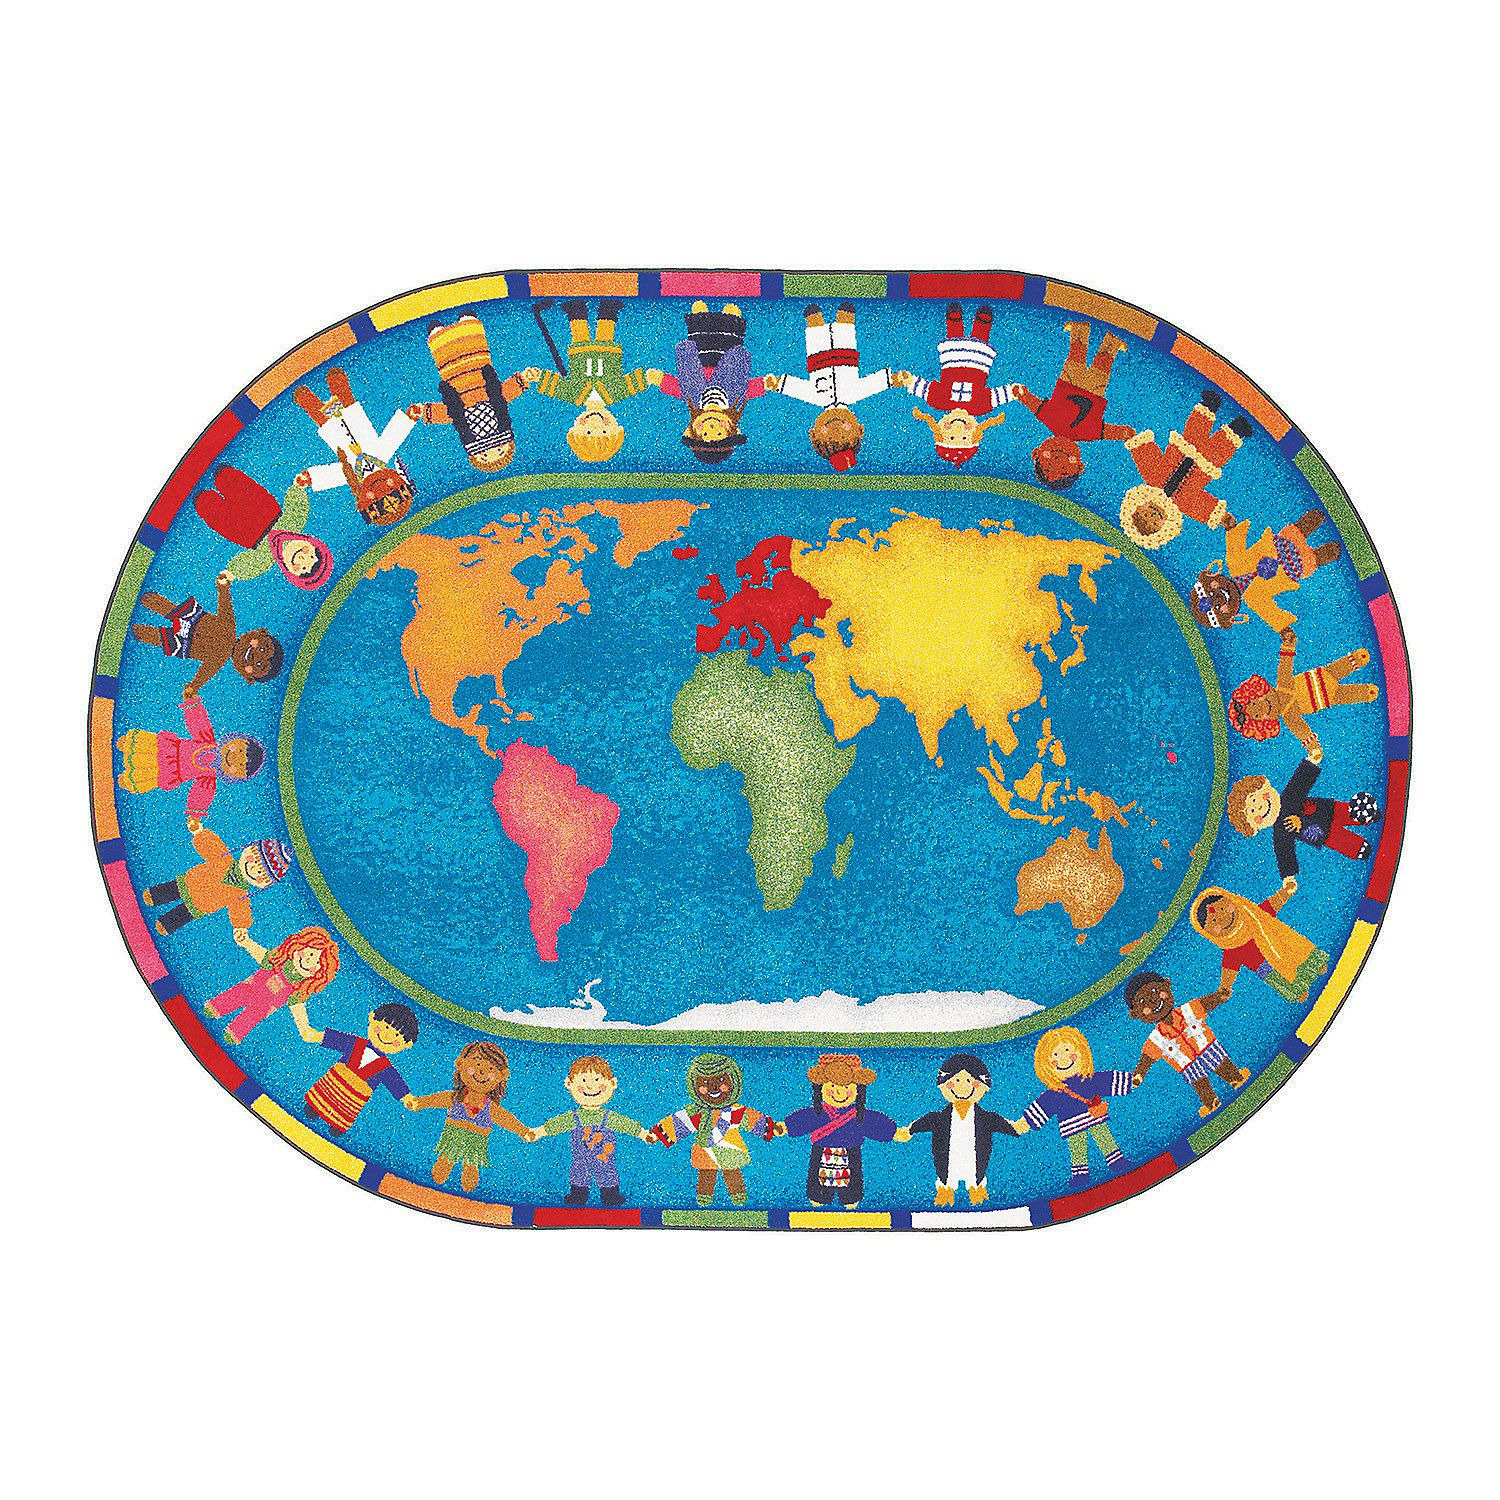 Hands Around The World Classroom Rug 5 Ft 4 X 7 Ft 8 Oval Classroom Rug Kids Area Rugs World Map Rug